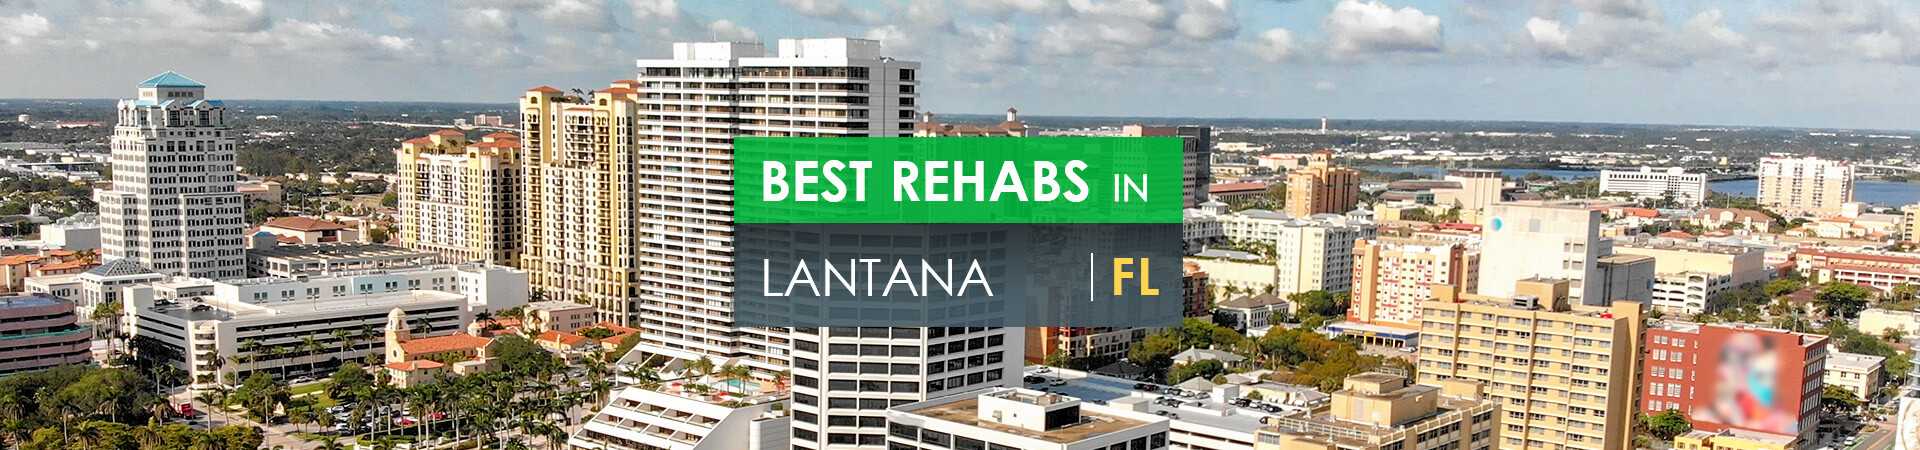 Best rehabs in Lantana, FL